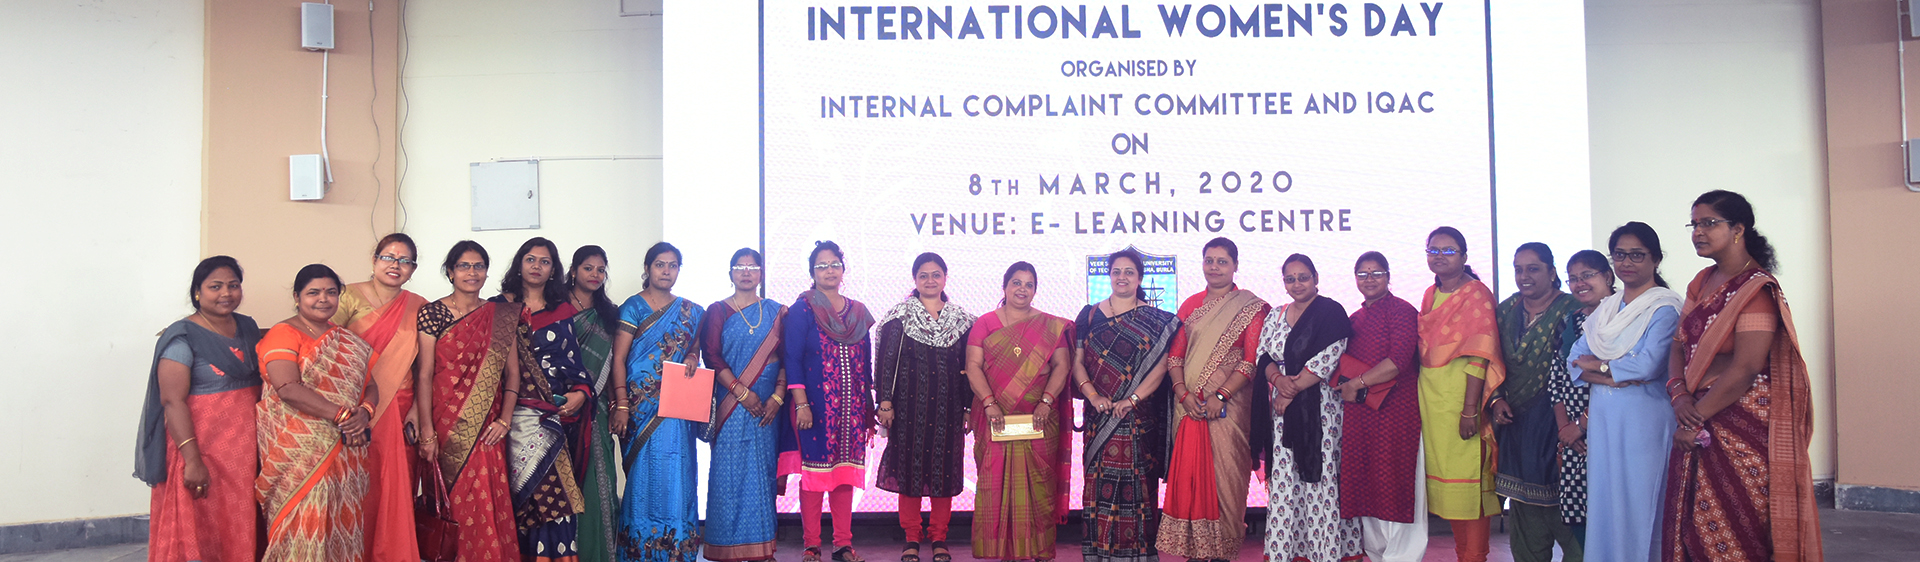 International Women's day has been celebrated at VSSUT,Burla on 8th March 2020 in presence of Vice-Chancellor in-charge Prof.P.K.Hota.,Dr. Sunanda Nayak,VIMSAR,chief guest.Mr.Amaresh Panda,additional Superintendent of Police.